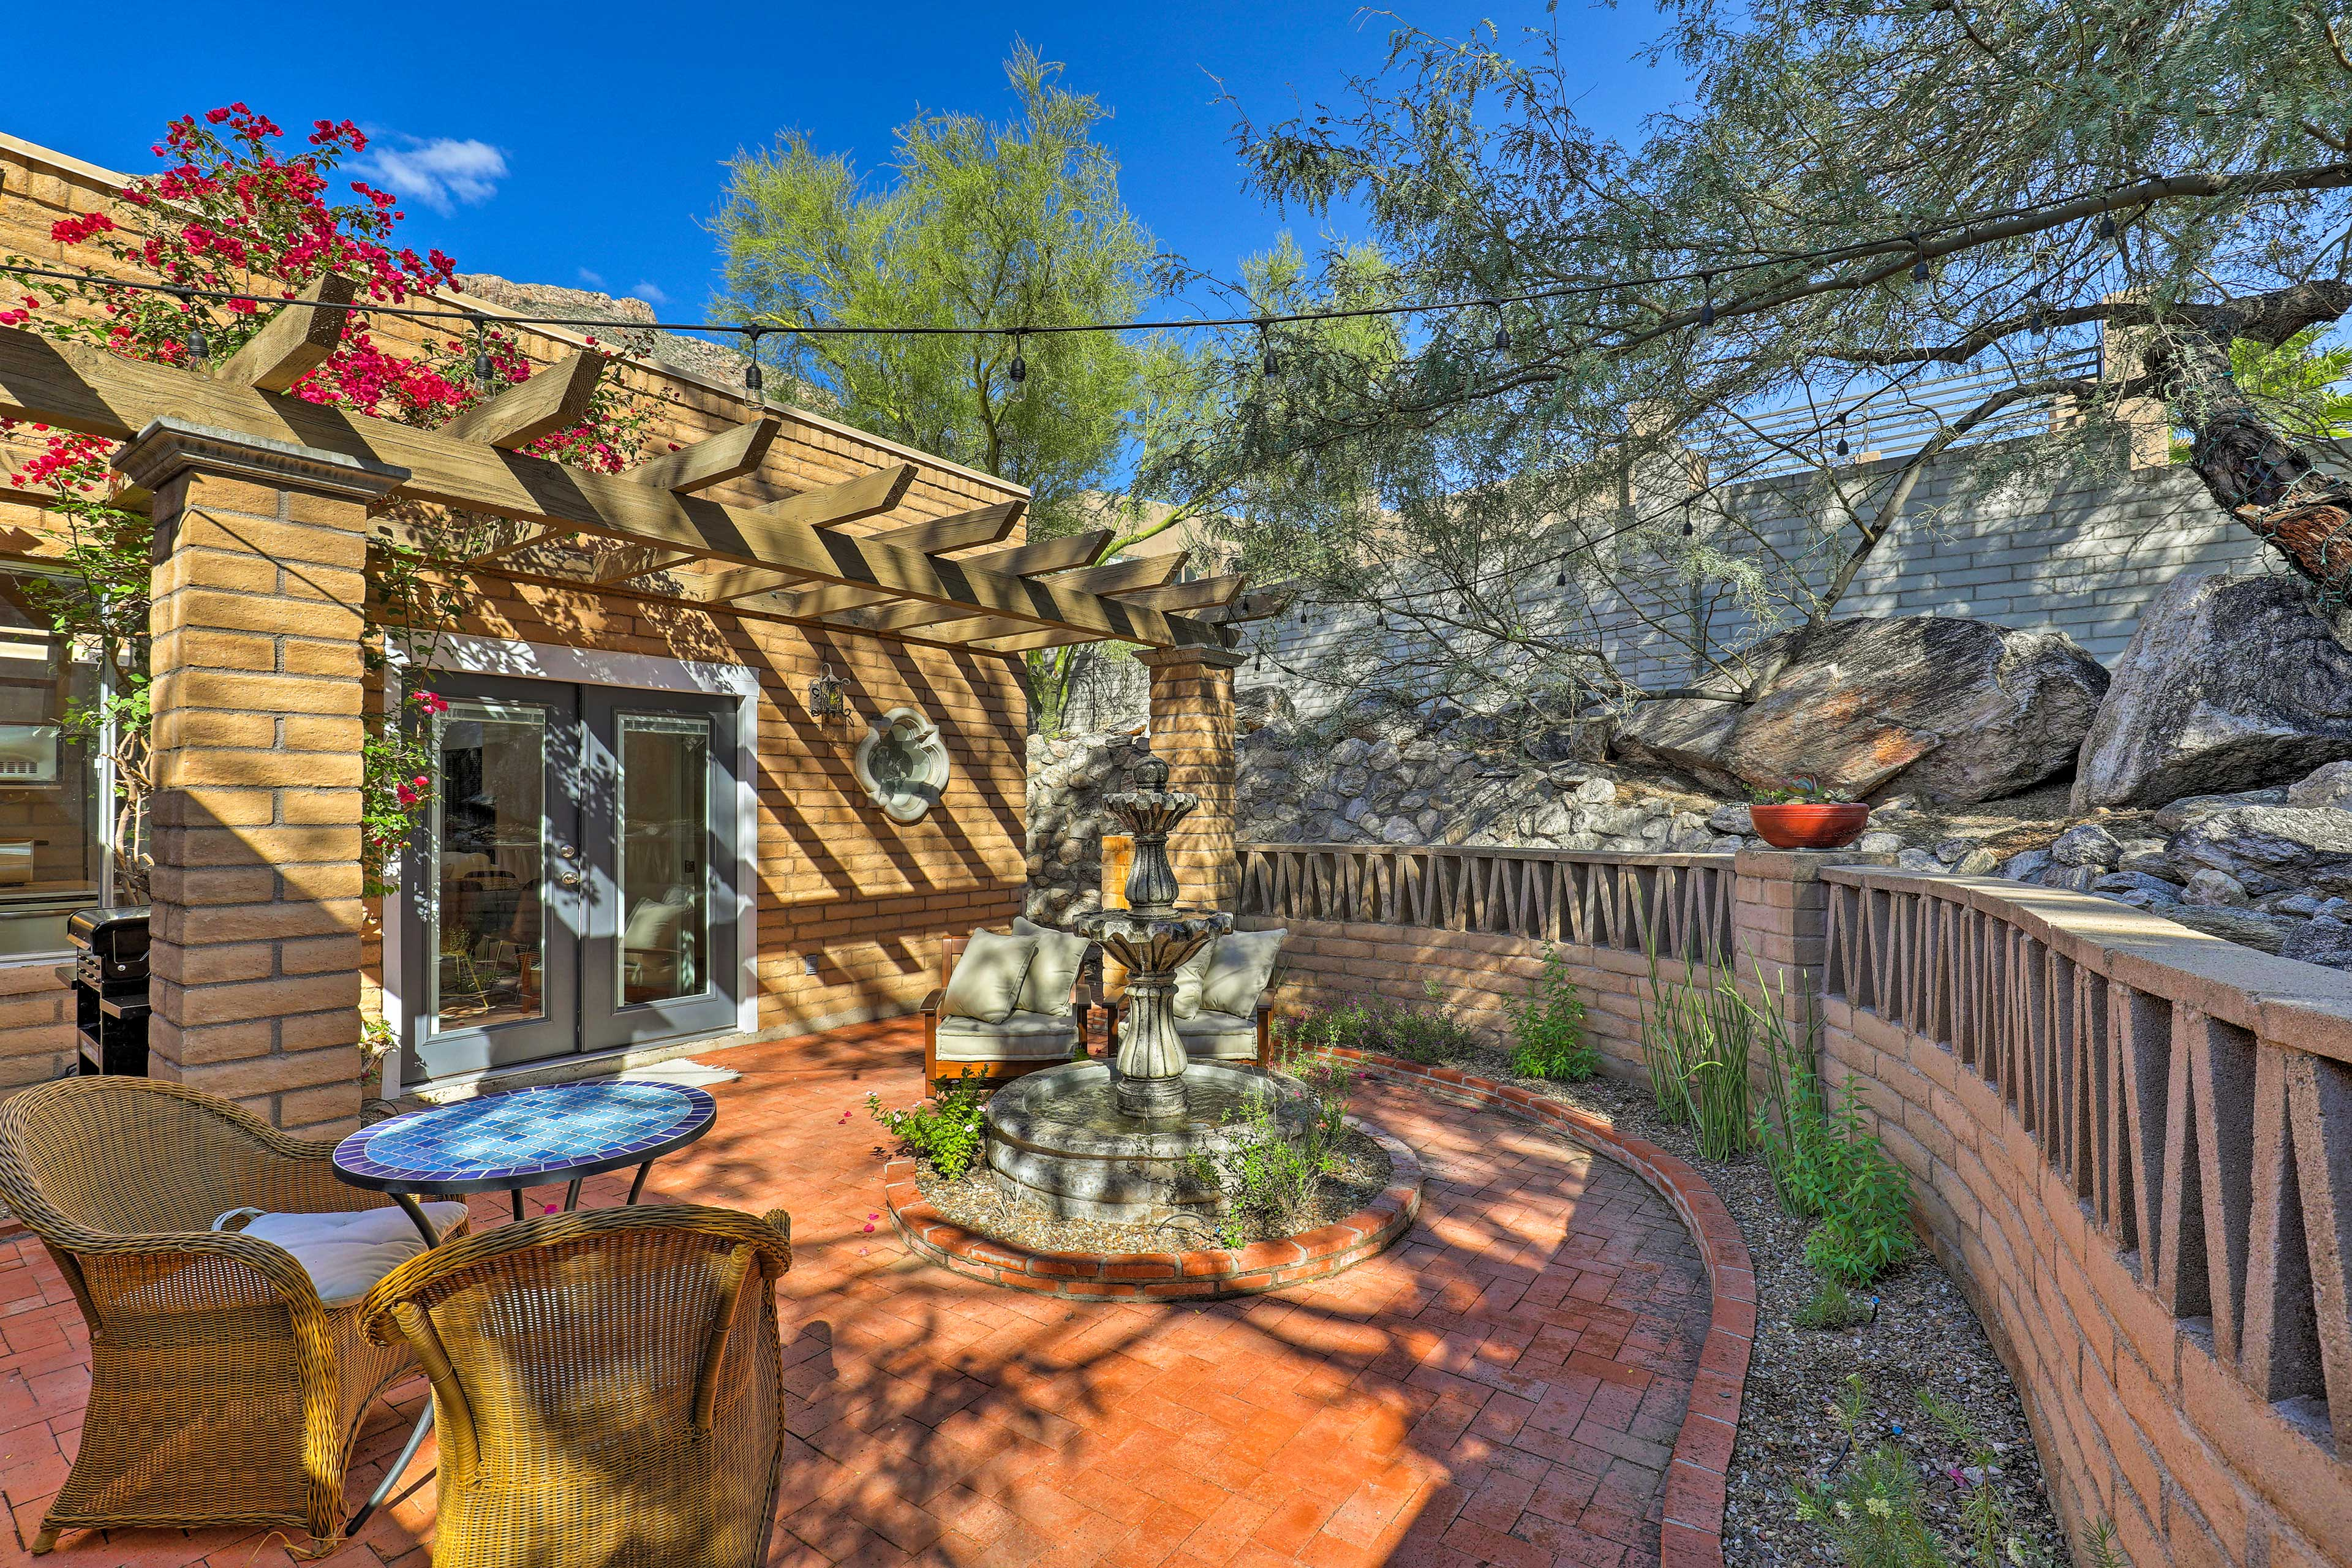 Escape to Tucson and stay at this vacation rental casita!